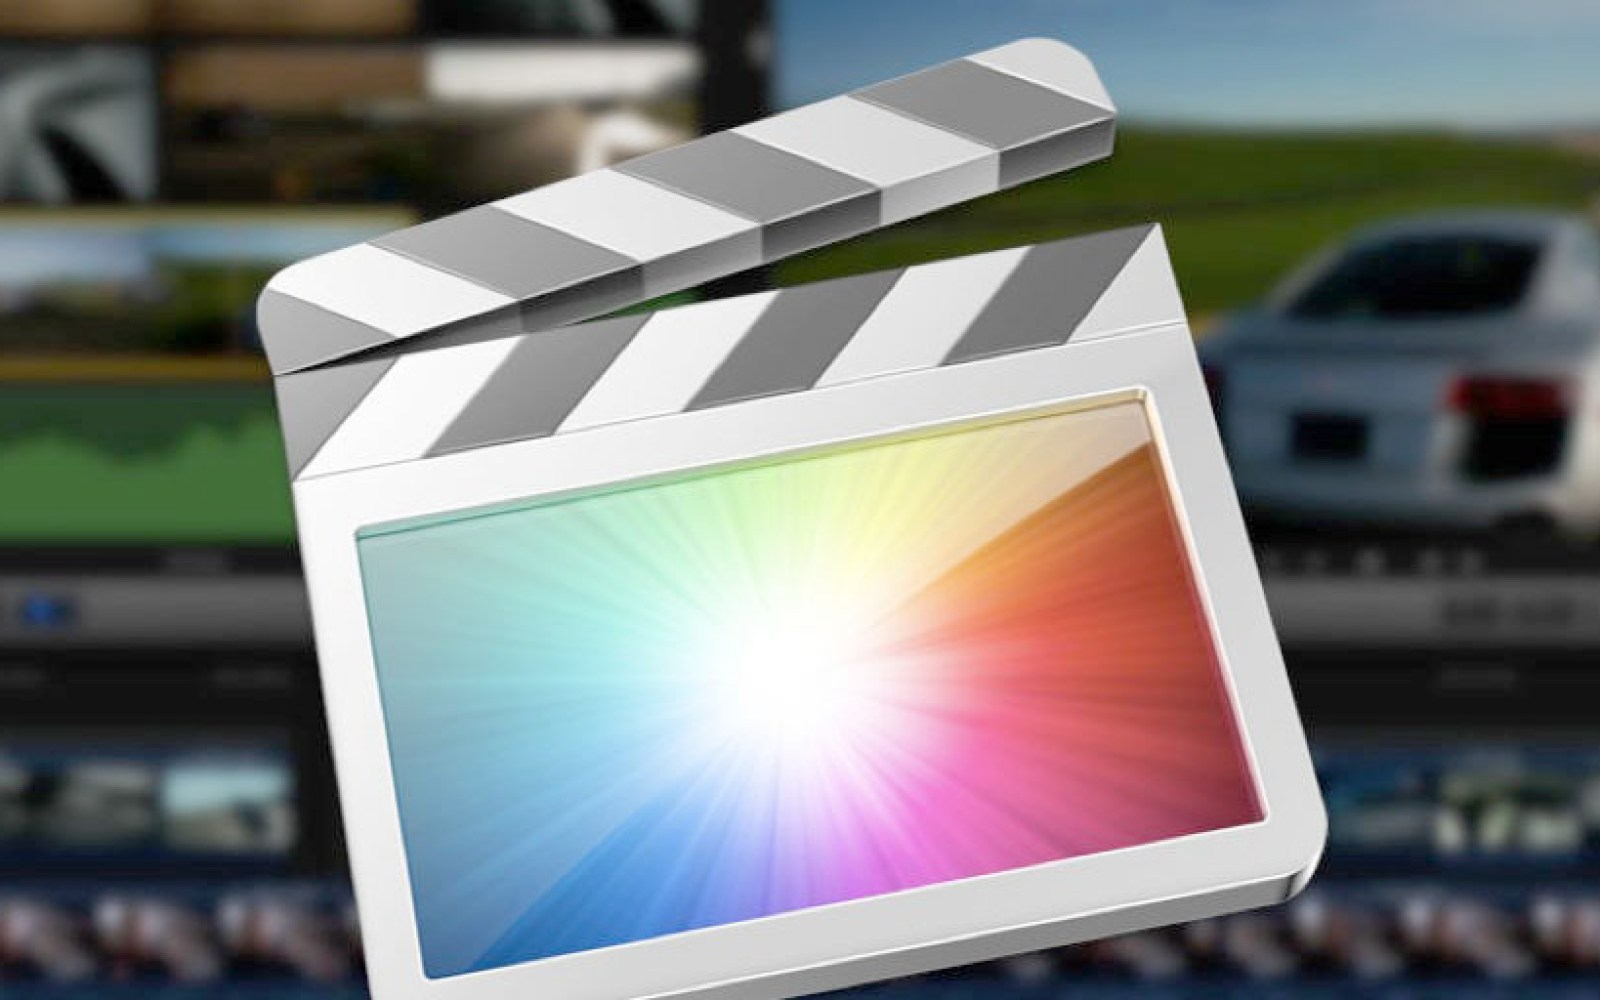 Final Cut Pro updated with 4k export to Apple devices, multiple YouTube accounts & more